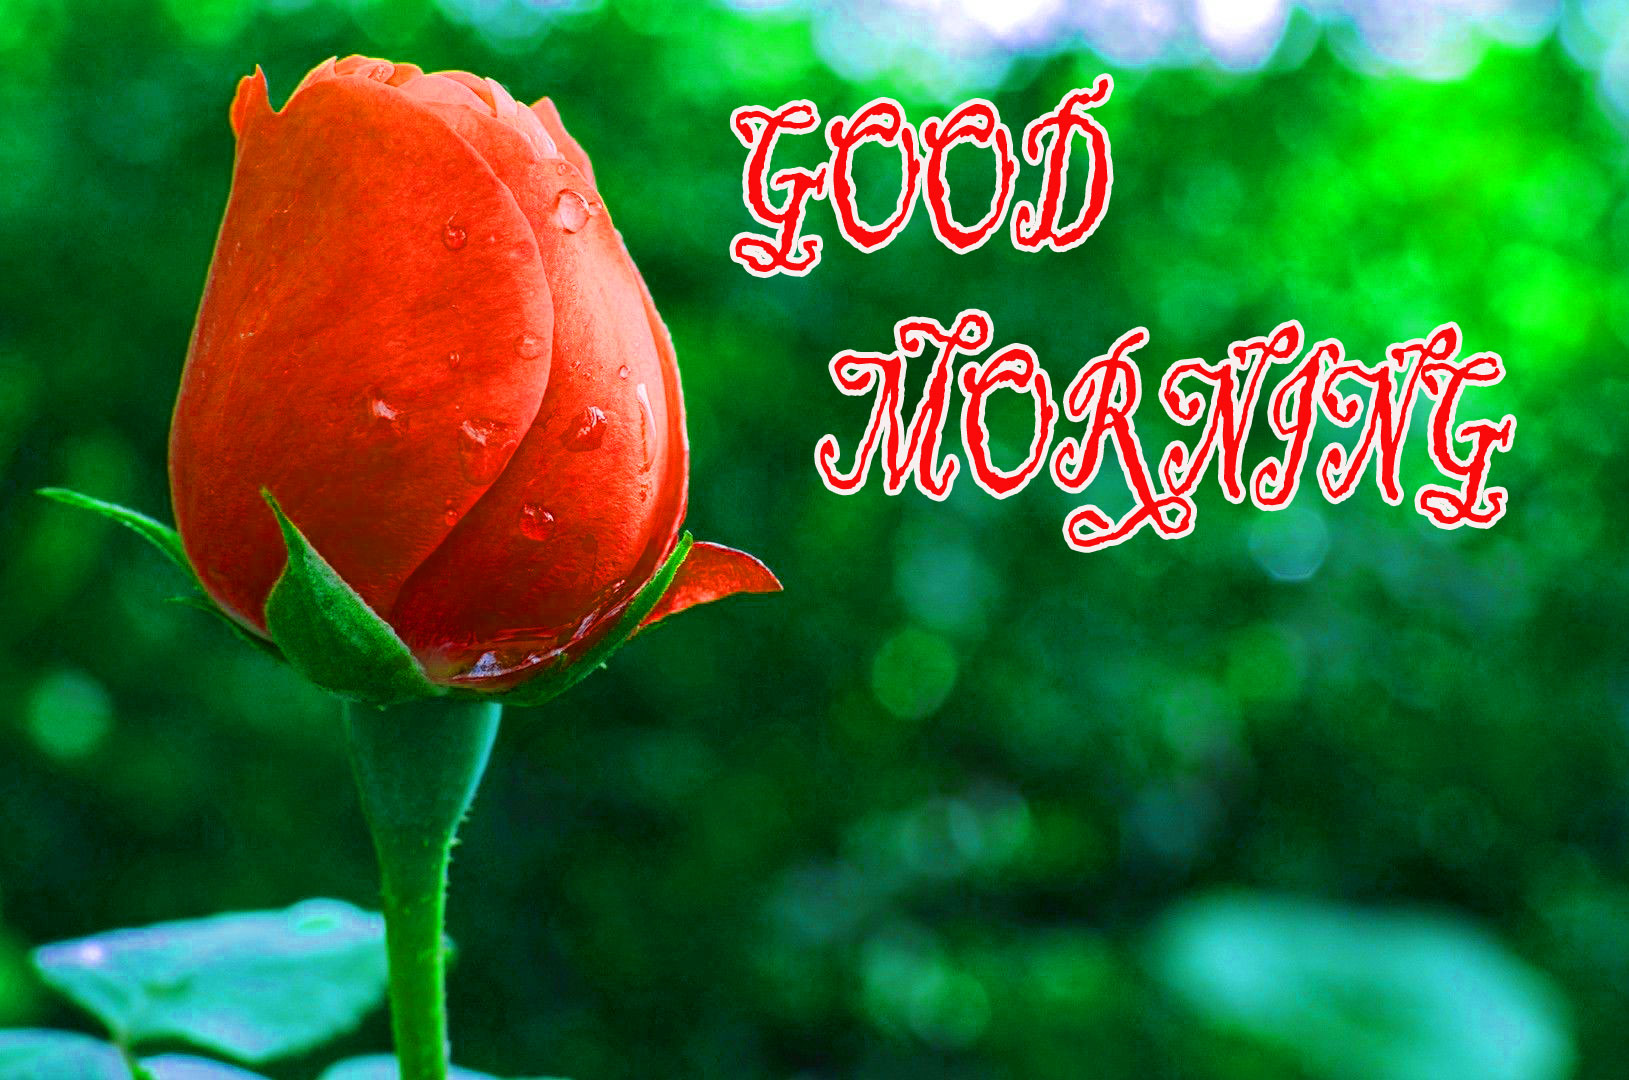 GOOD MORNING IMAGE WITH BEAUTIFUL FLOWERS NATURE WALLPAPER PICTURES FREE FOR WHATSAPP